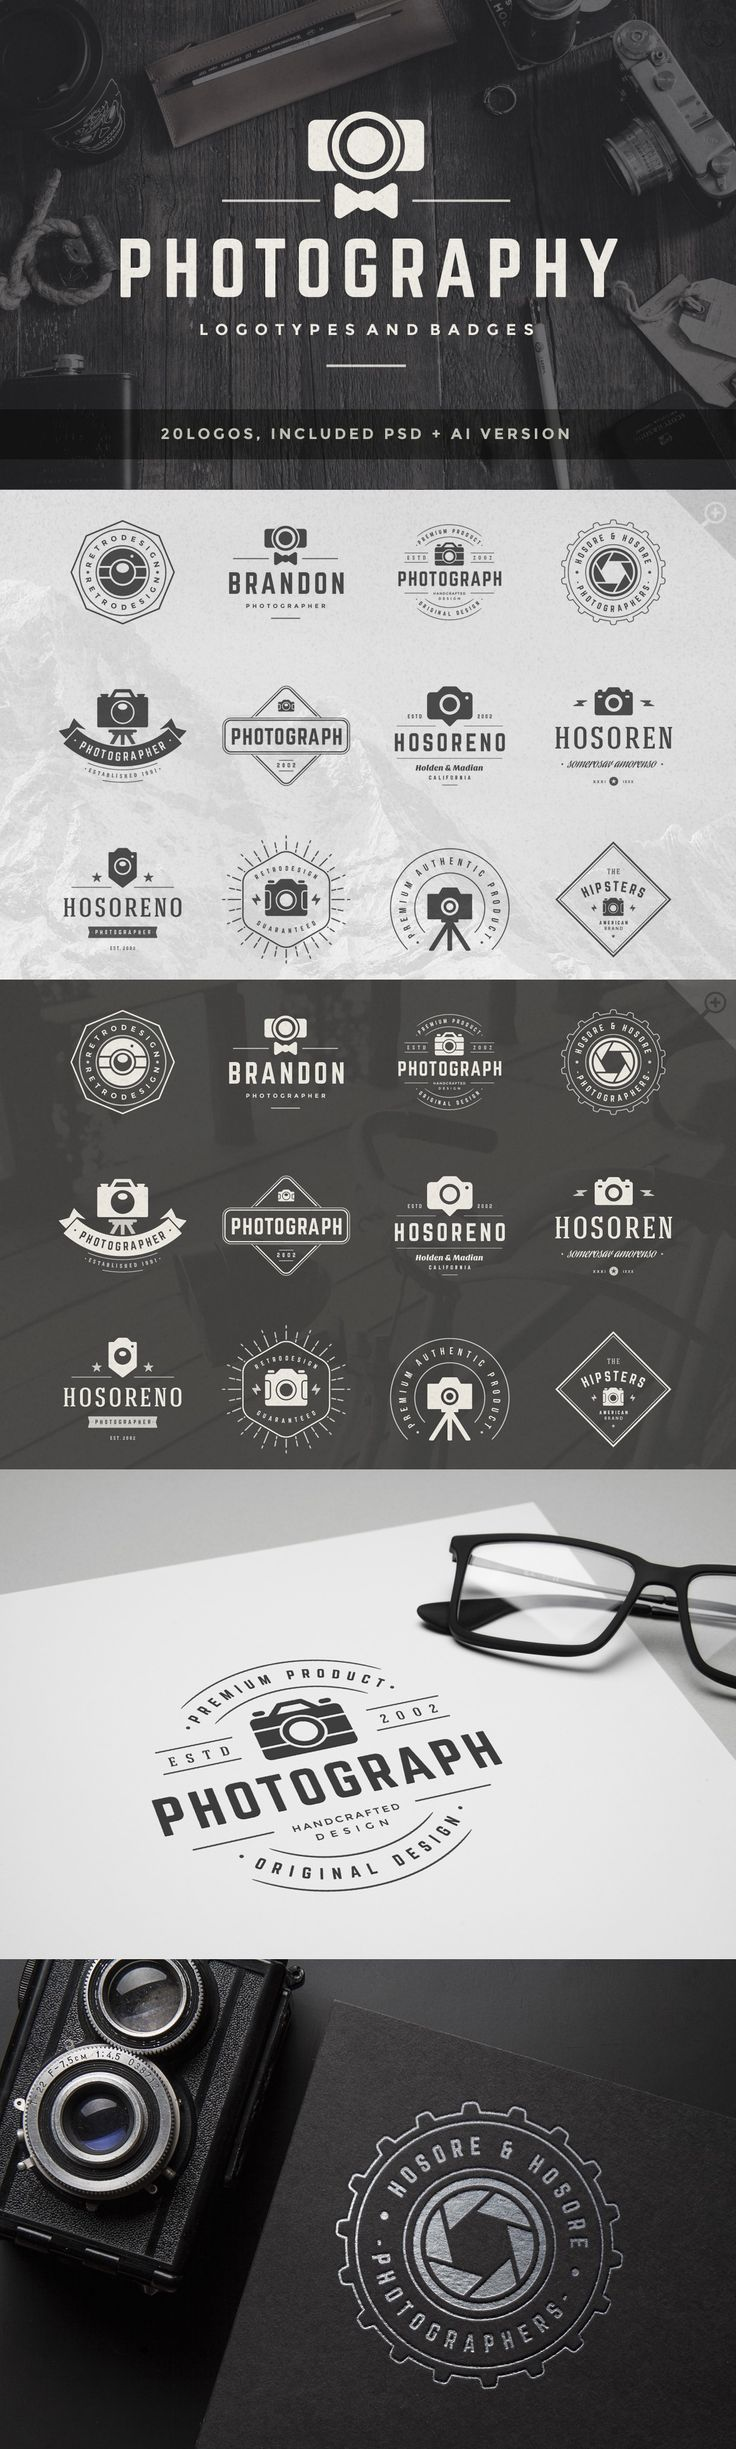 1000 ideas about photography logo design 20 photography logos and badges templates psd design creativemarket